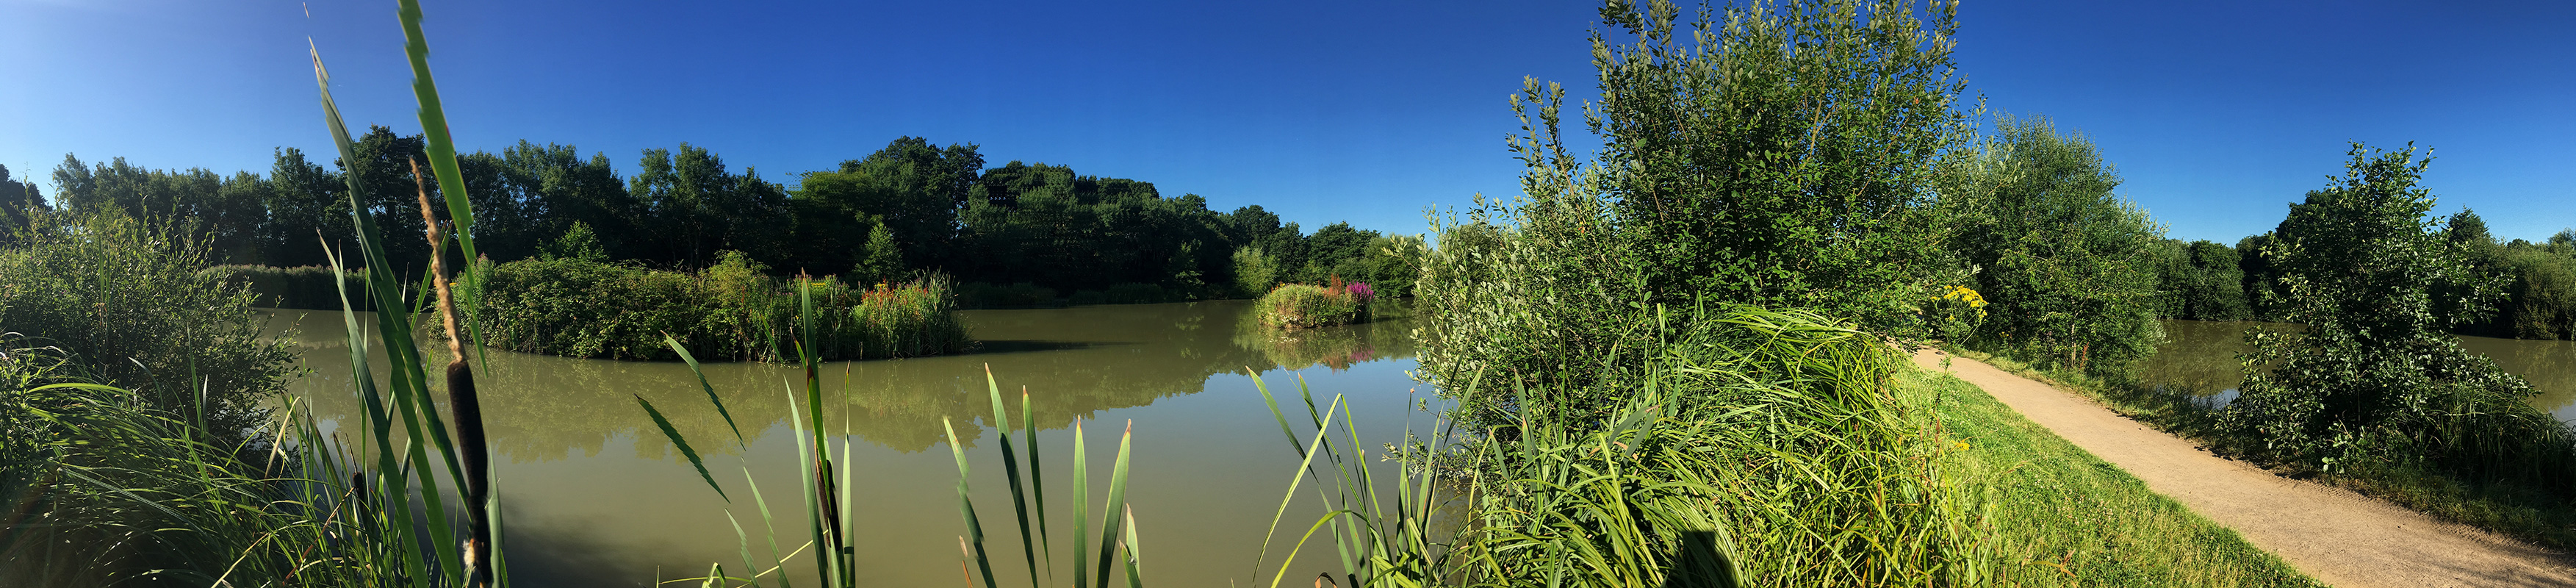 lake-02-orchard-place-farm-panorma